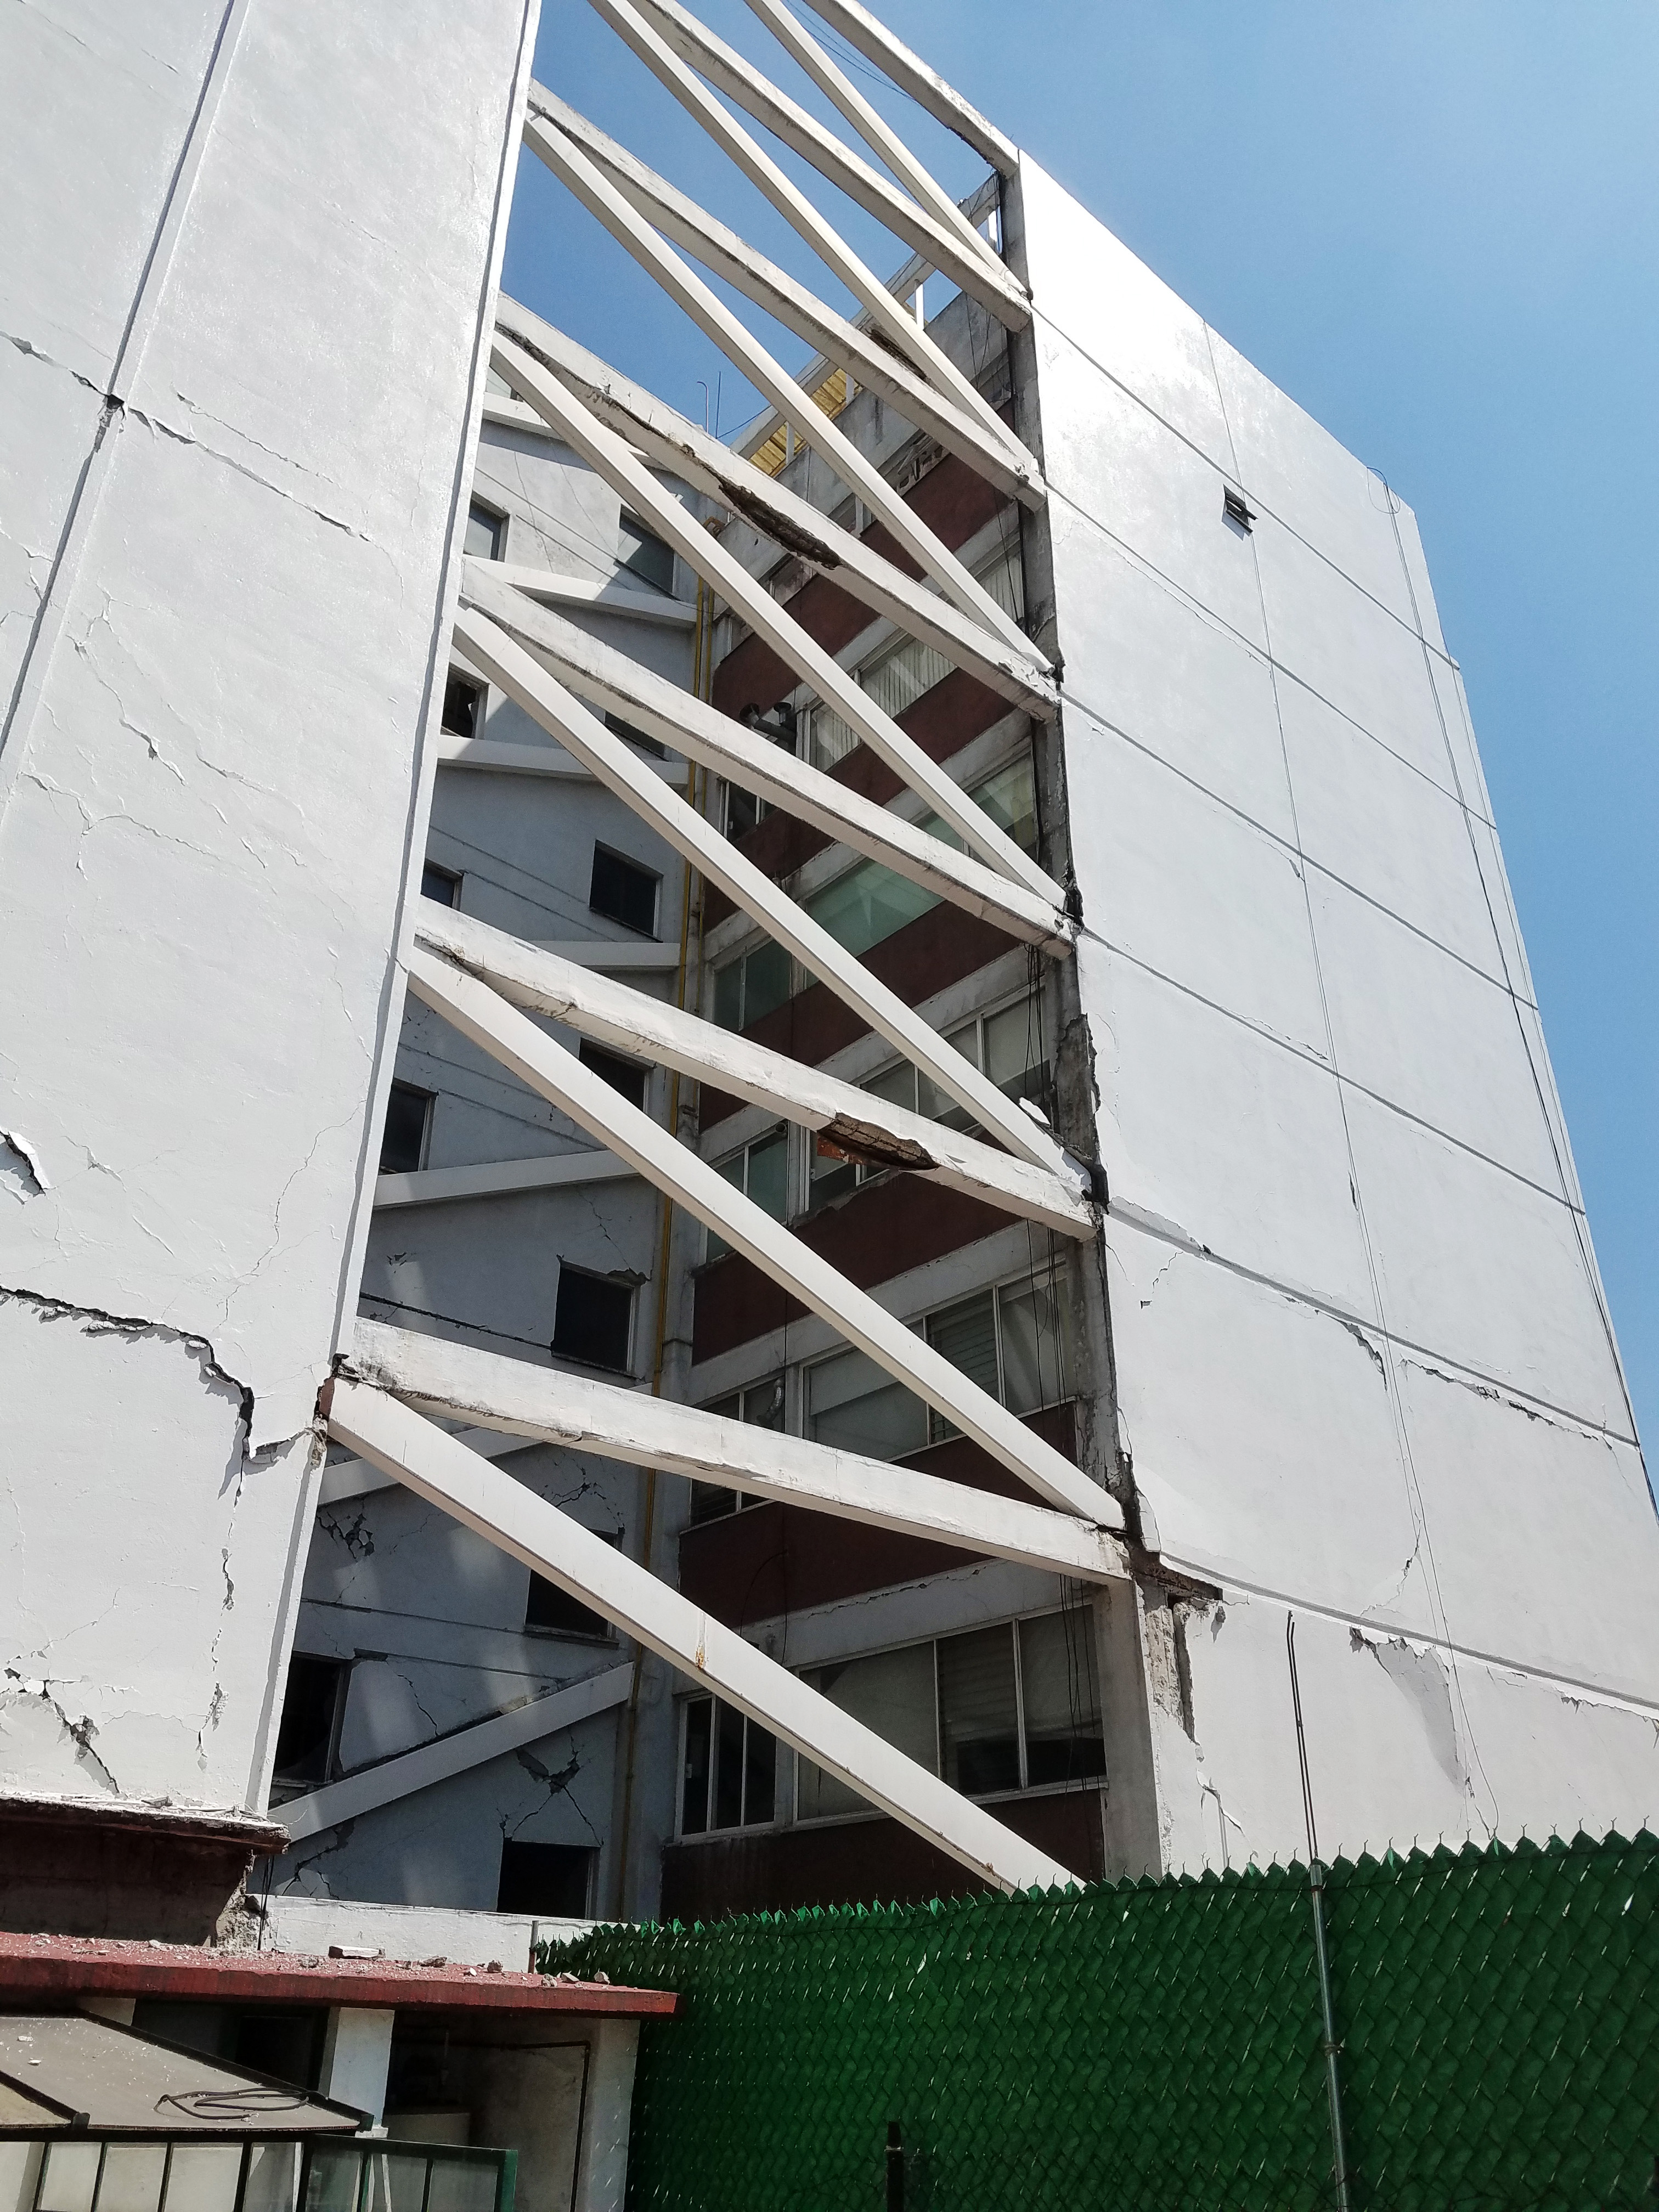 A damaged, retrofitted 8-story building at 81 Calle Amsterdam Mexico City with a cracked facade